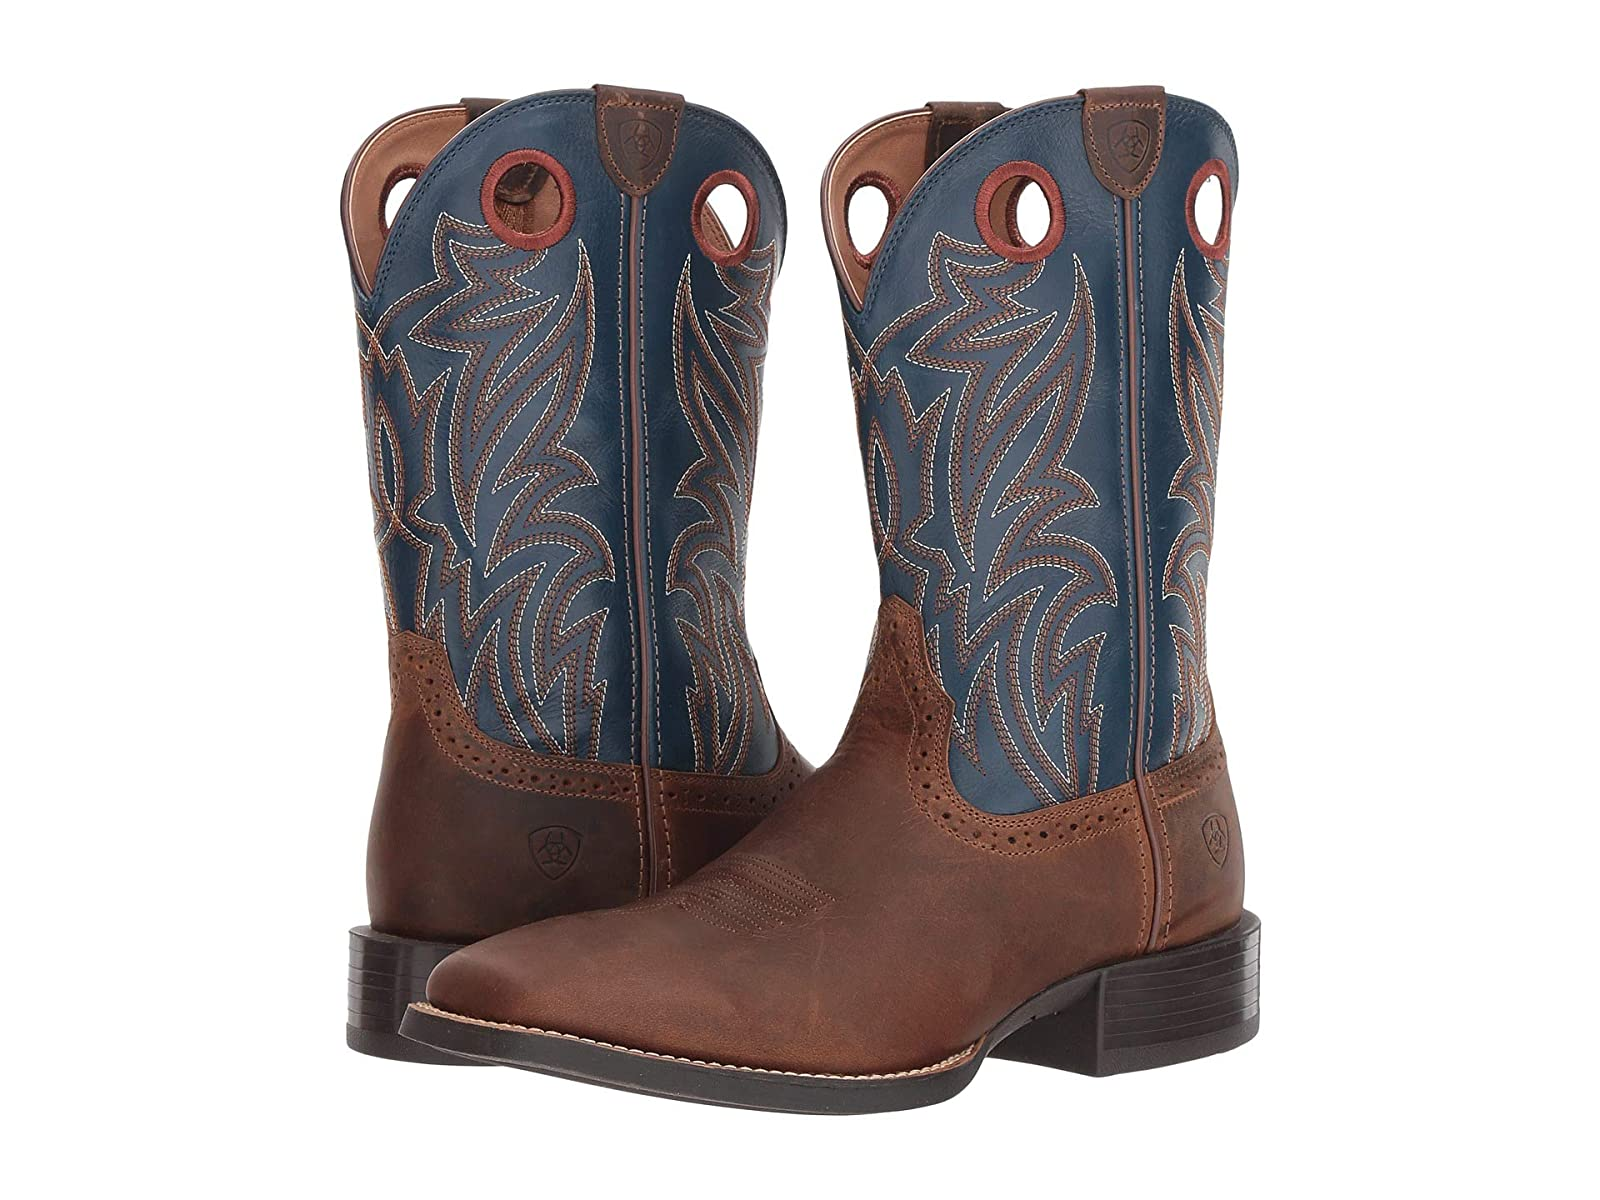 Ariat Sport SidebetSelling fashionable and eye-catching shoes